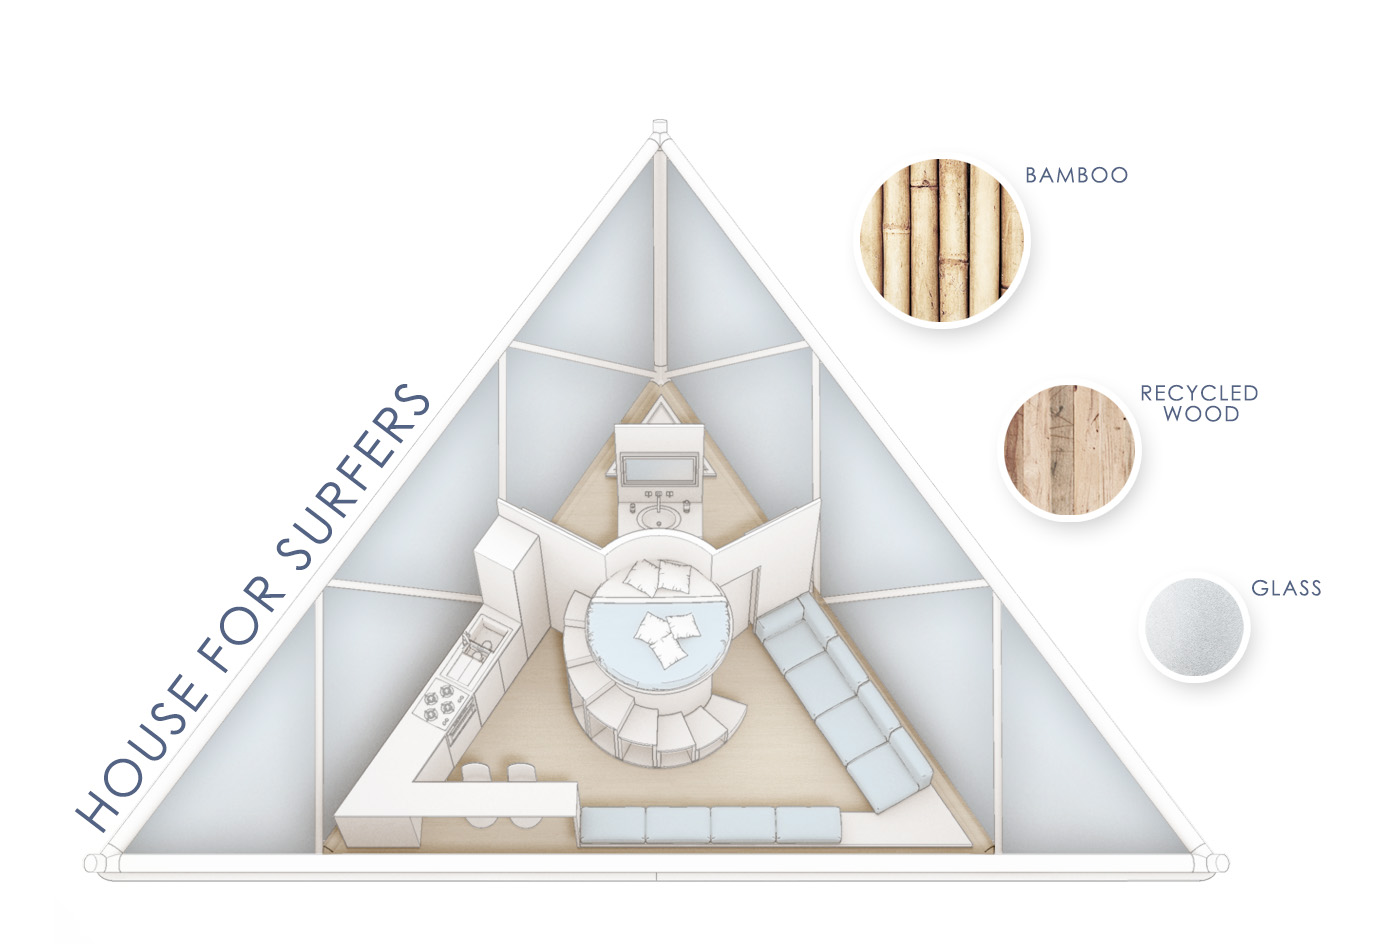 Axonometric and materials